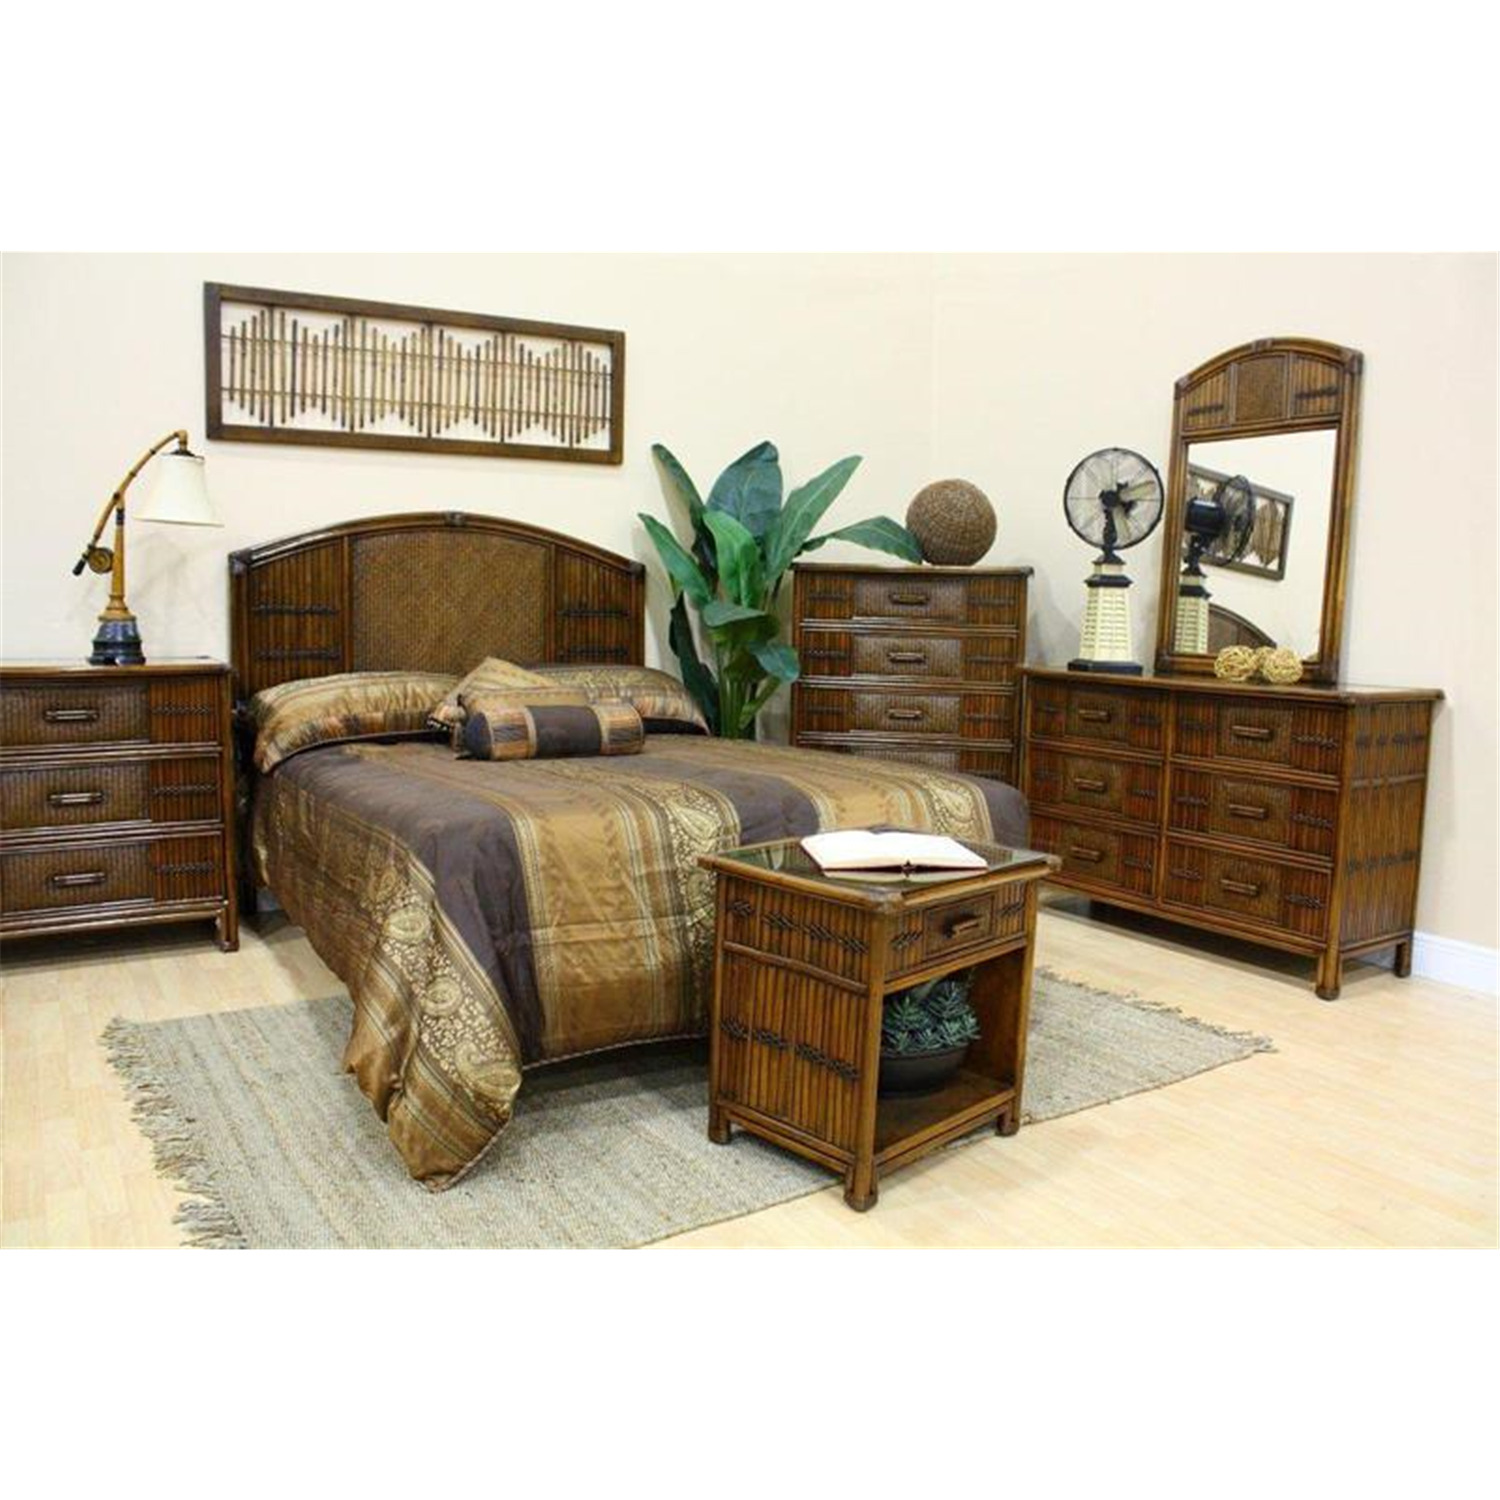 hospitality rattan polynesian bedroom set by oj commerce